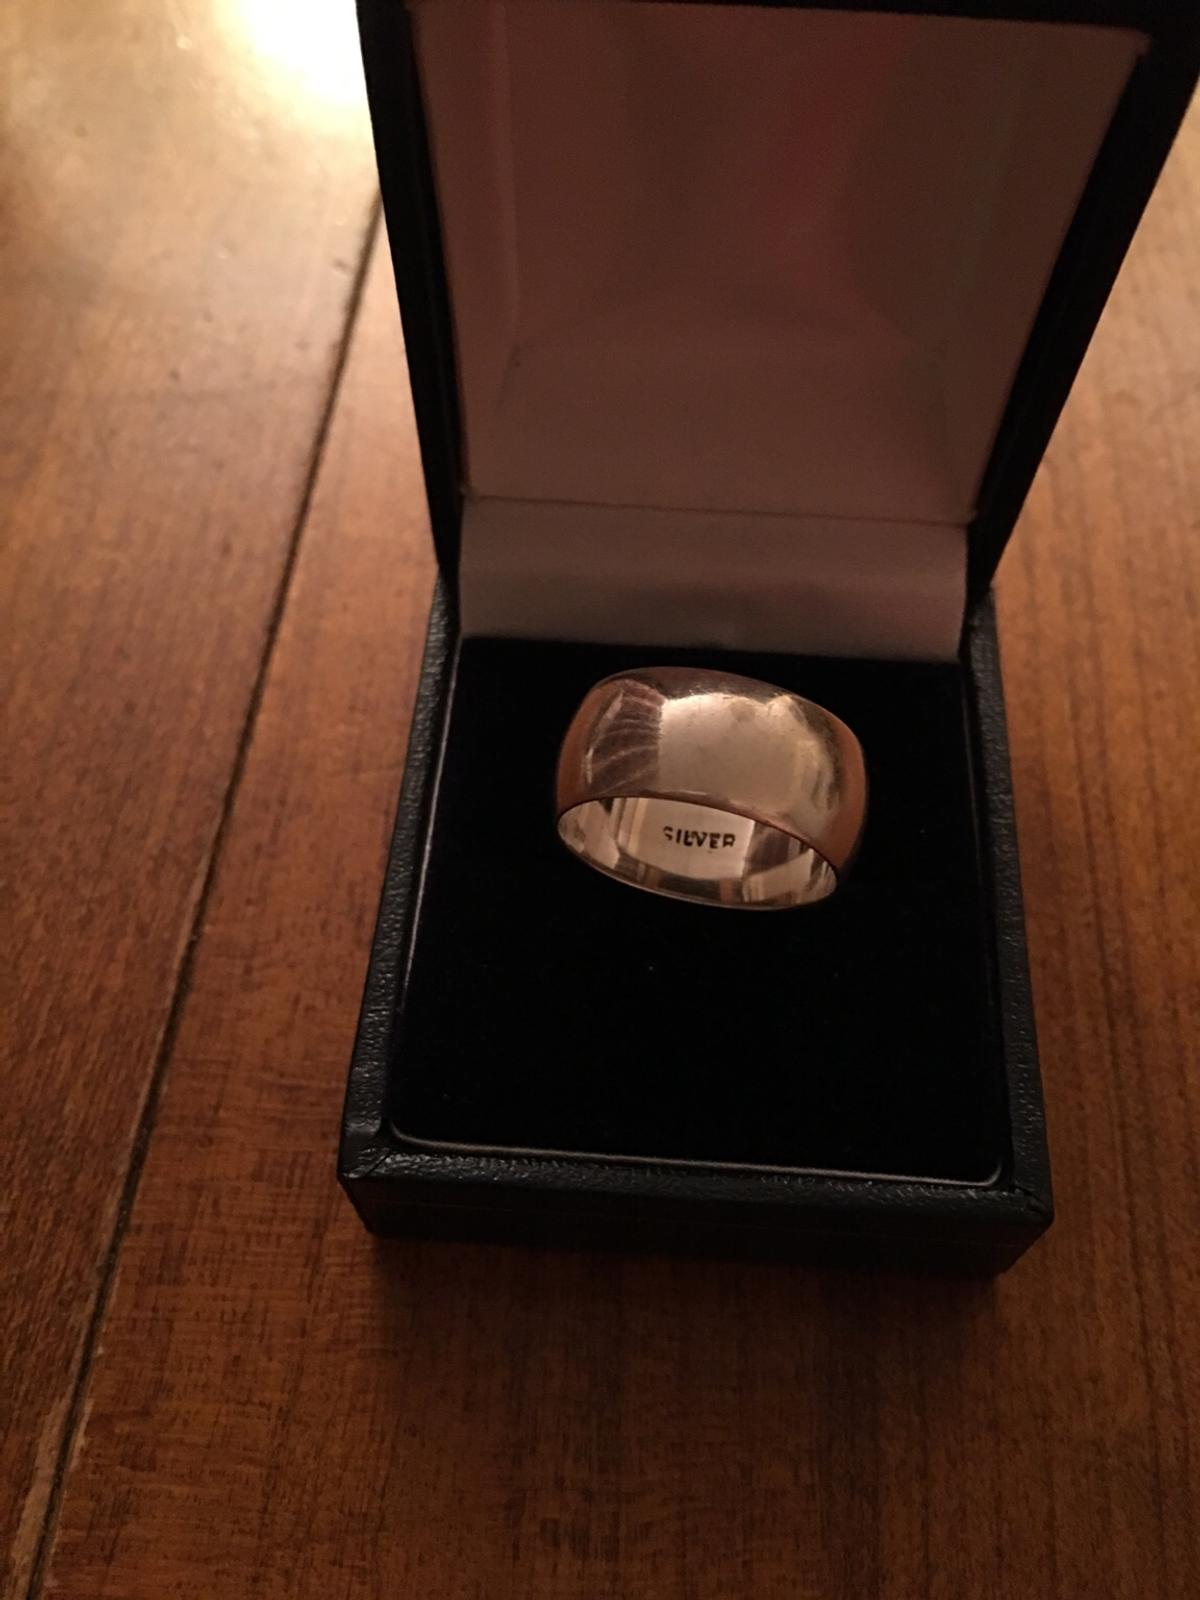 Heavy solid silver wedding band, hallmarks Silver show in photo. Postage paid by buyer